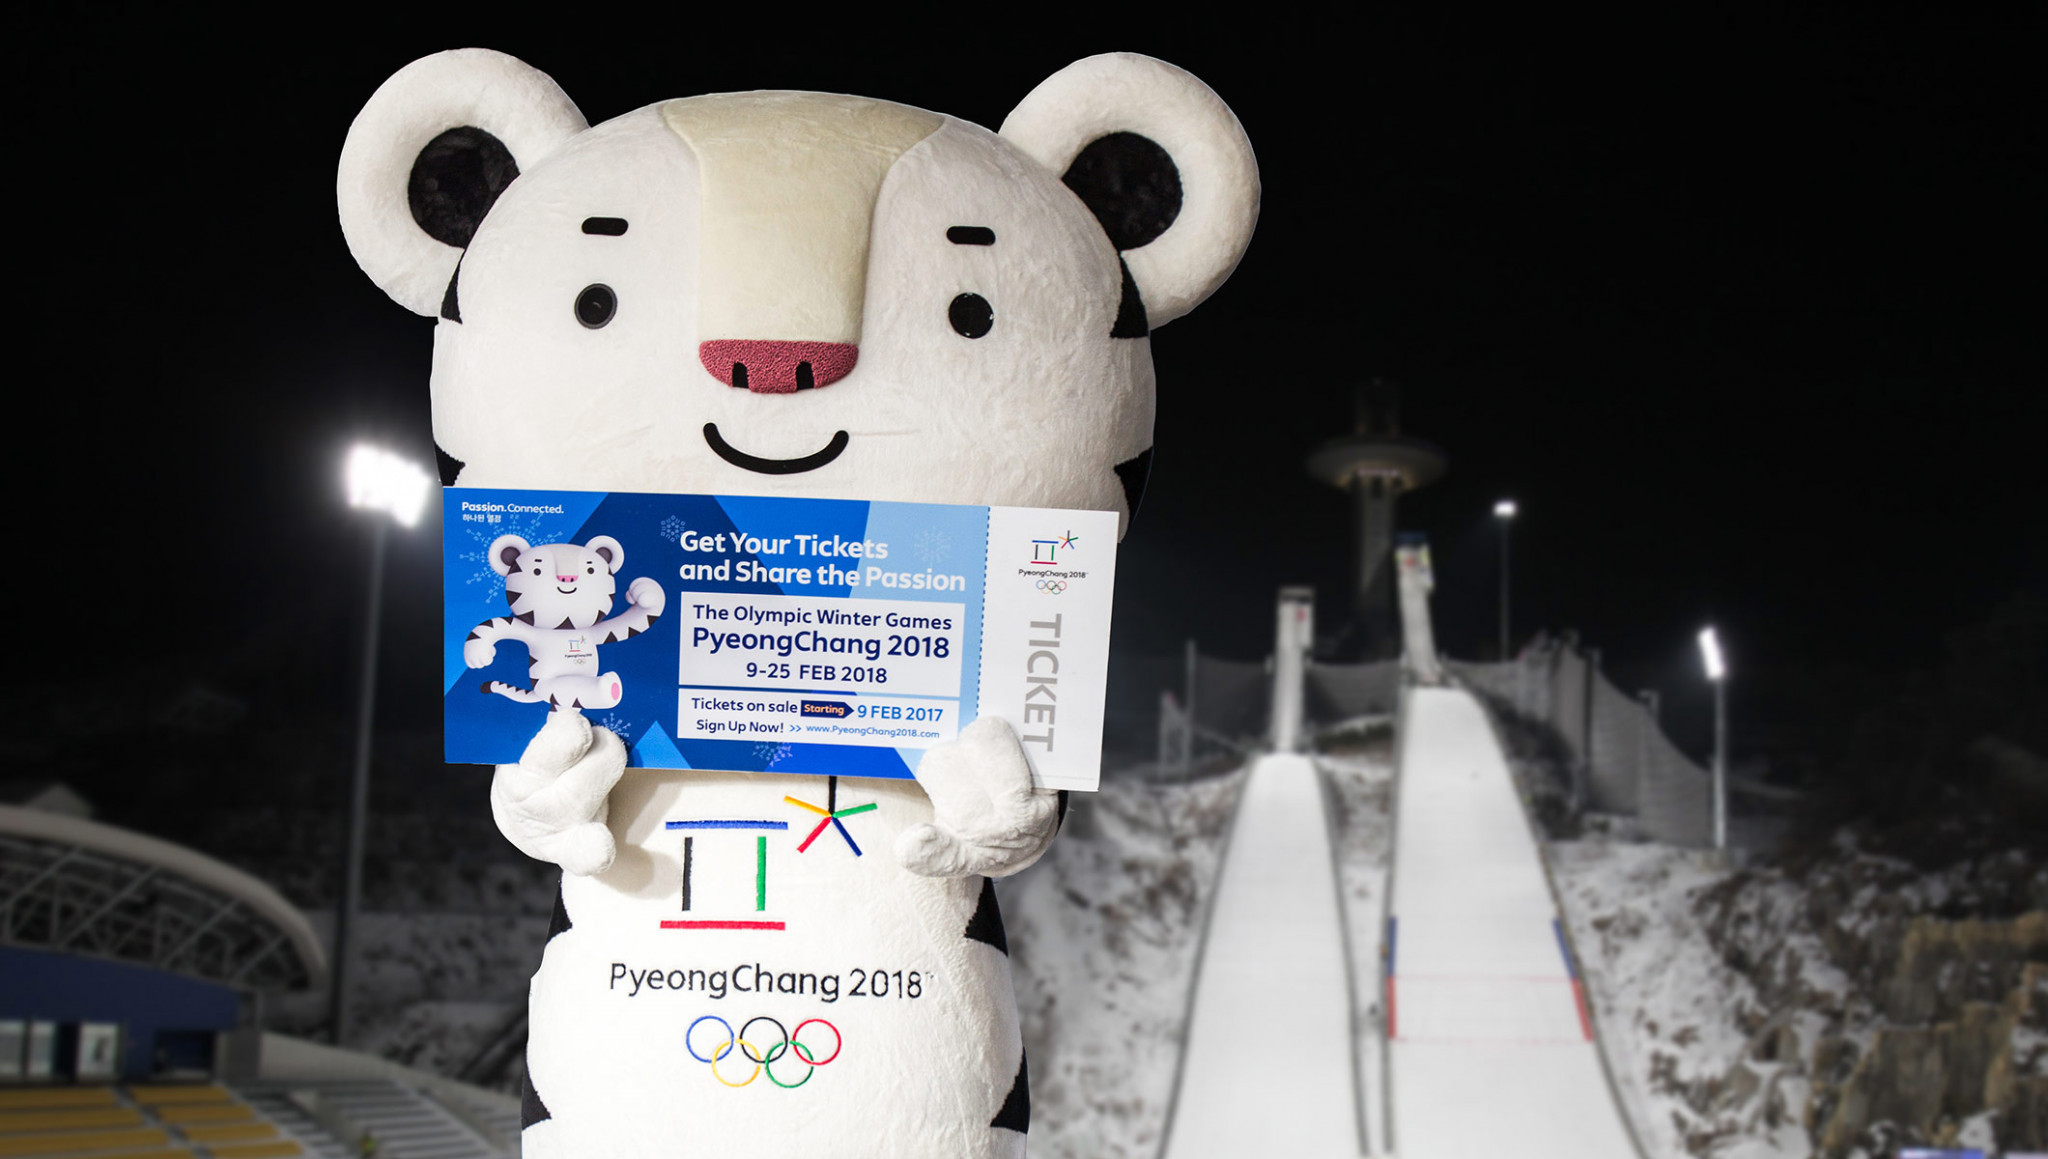 Ticket sales for Pyeongchang 2018 appear to be improving ©Getty Images